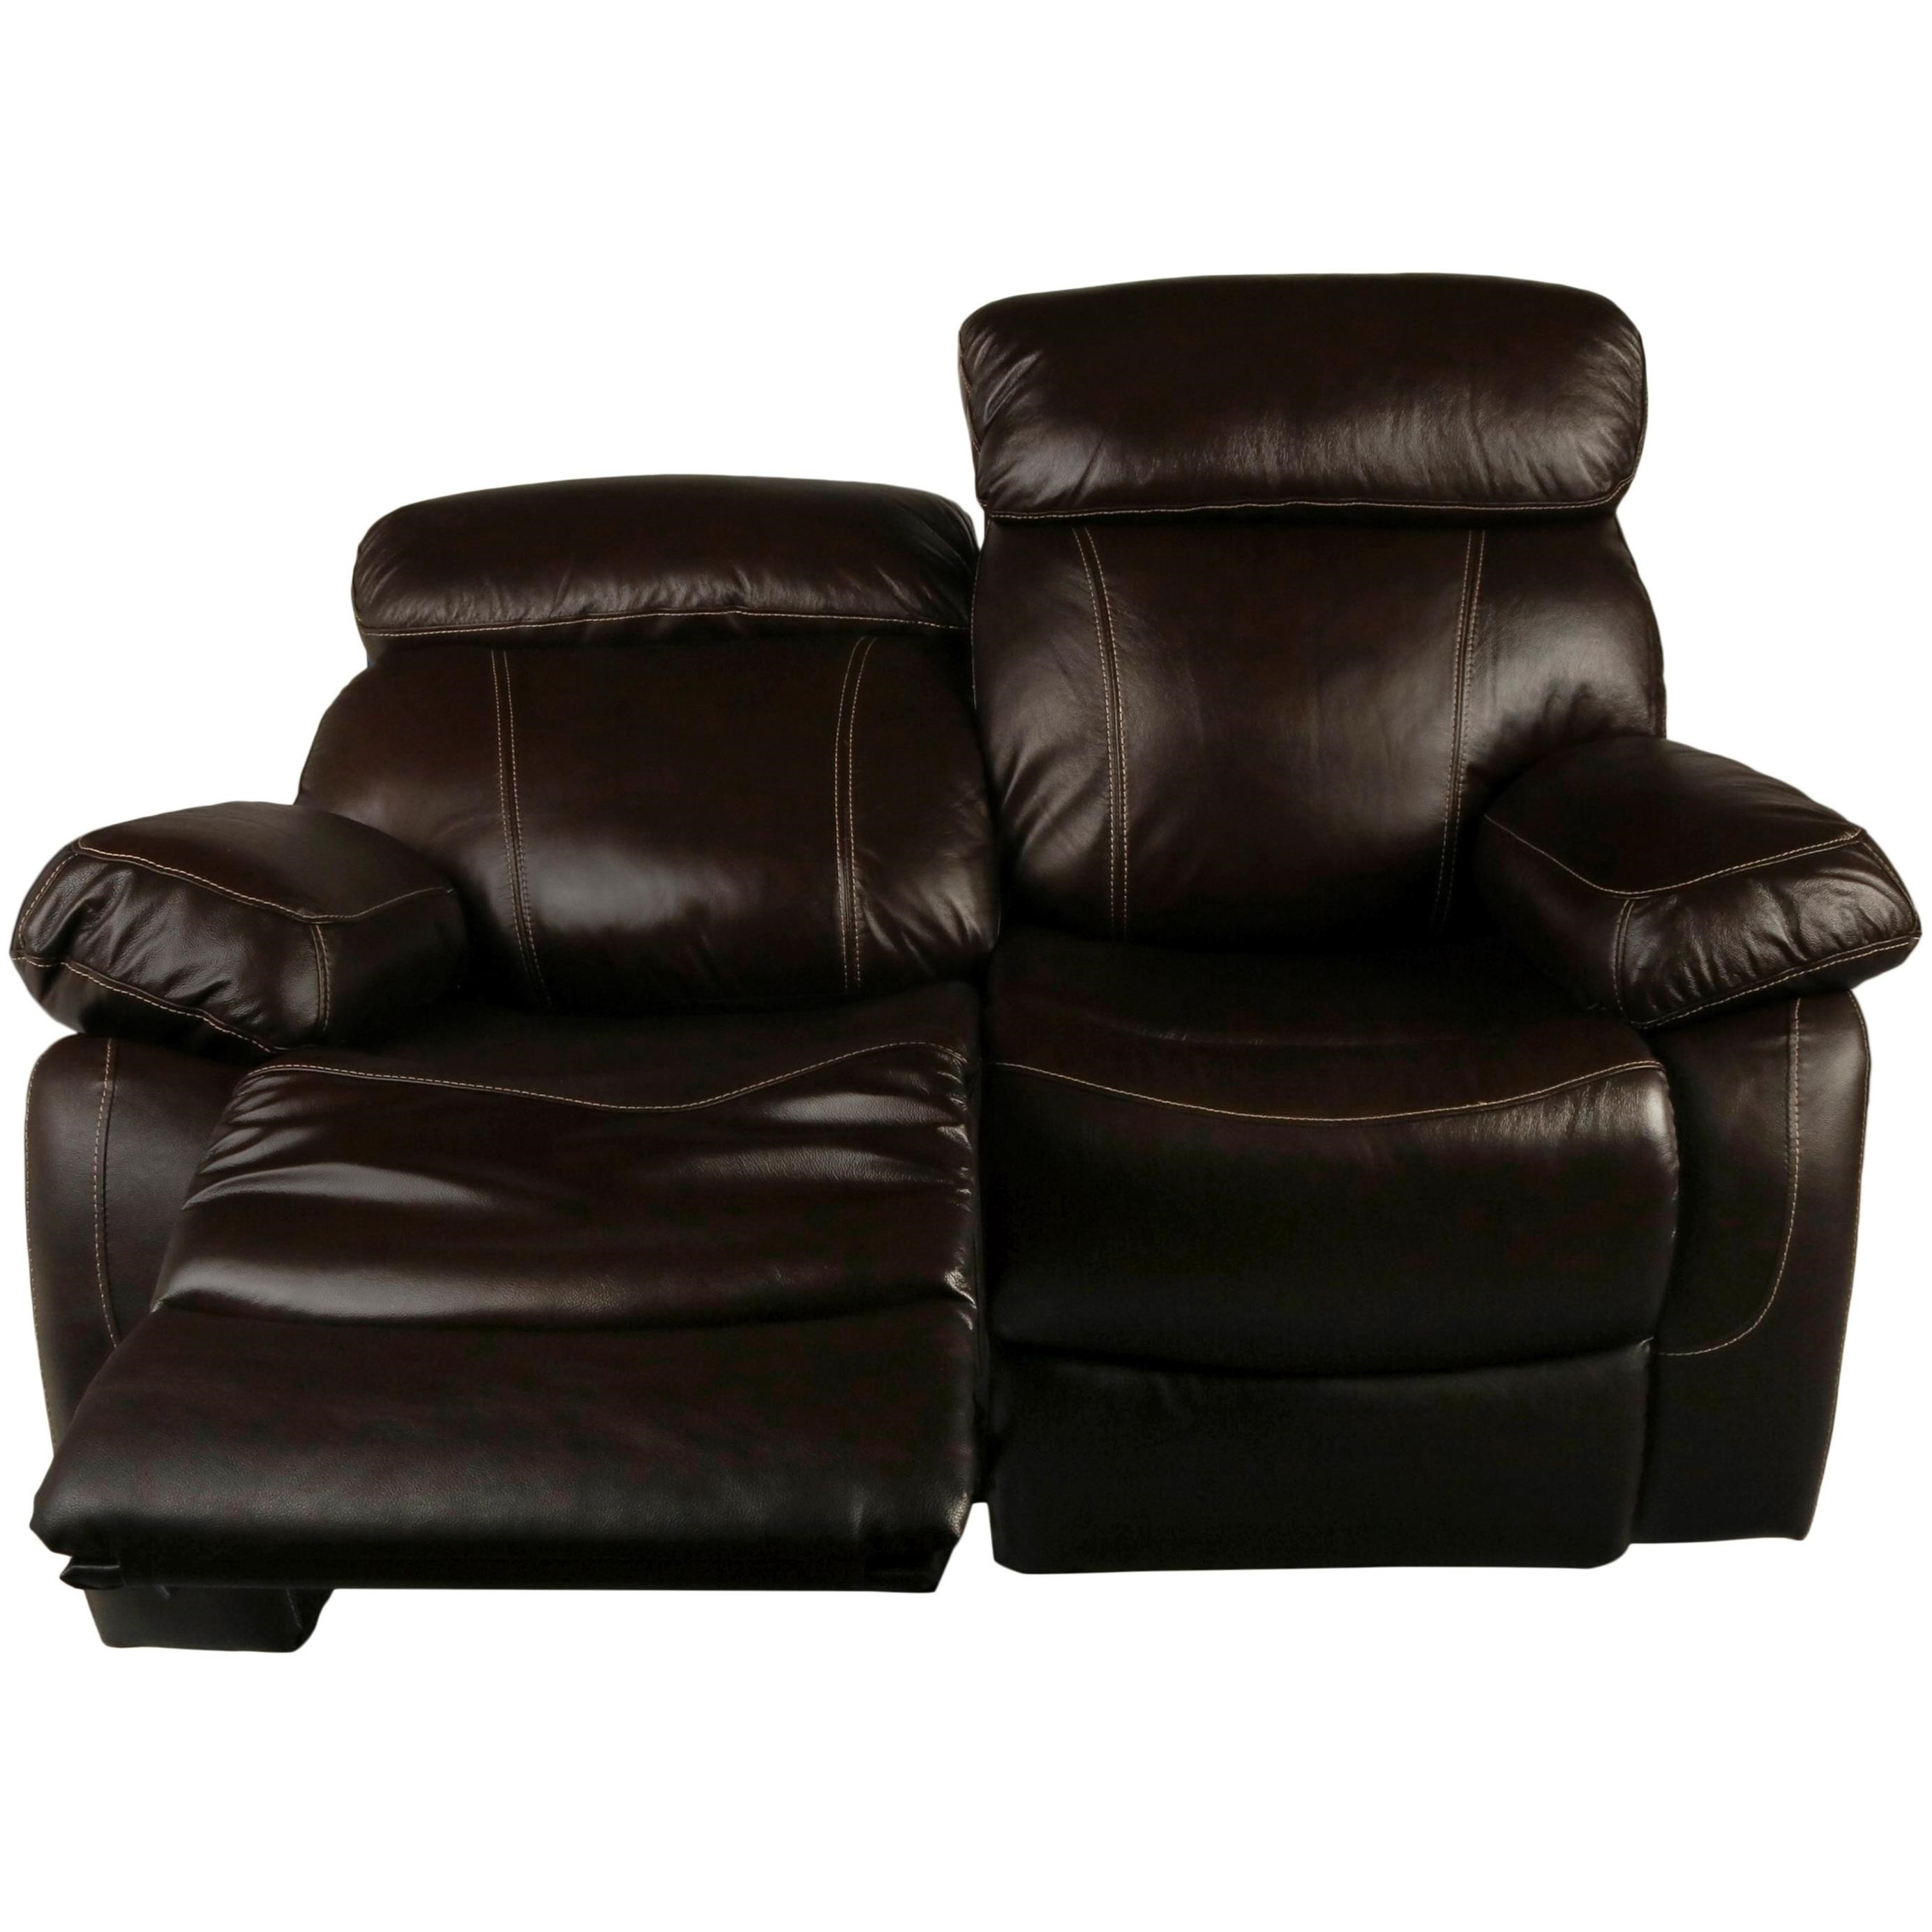 New Classic Dante Leather Casual Power Reclining Loveseat